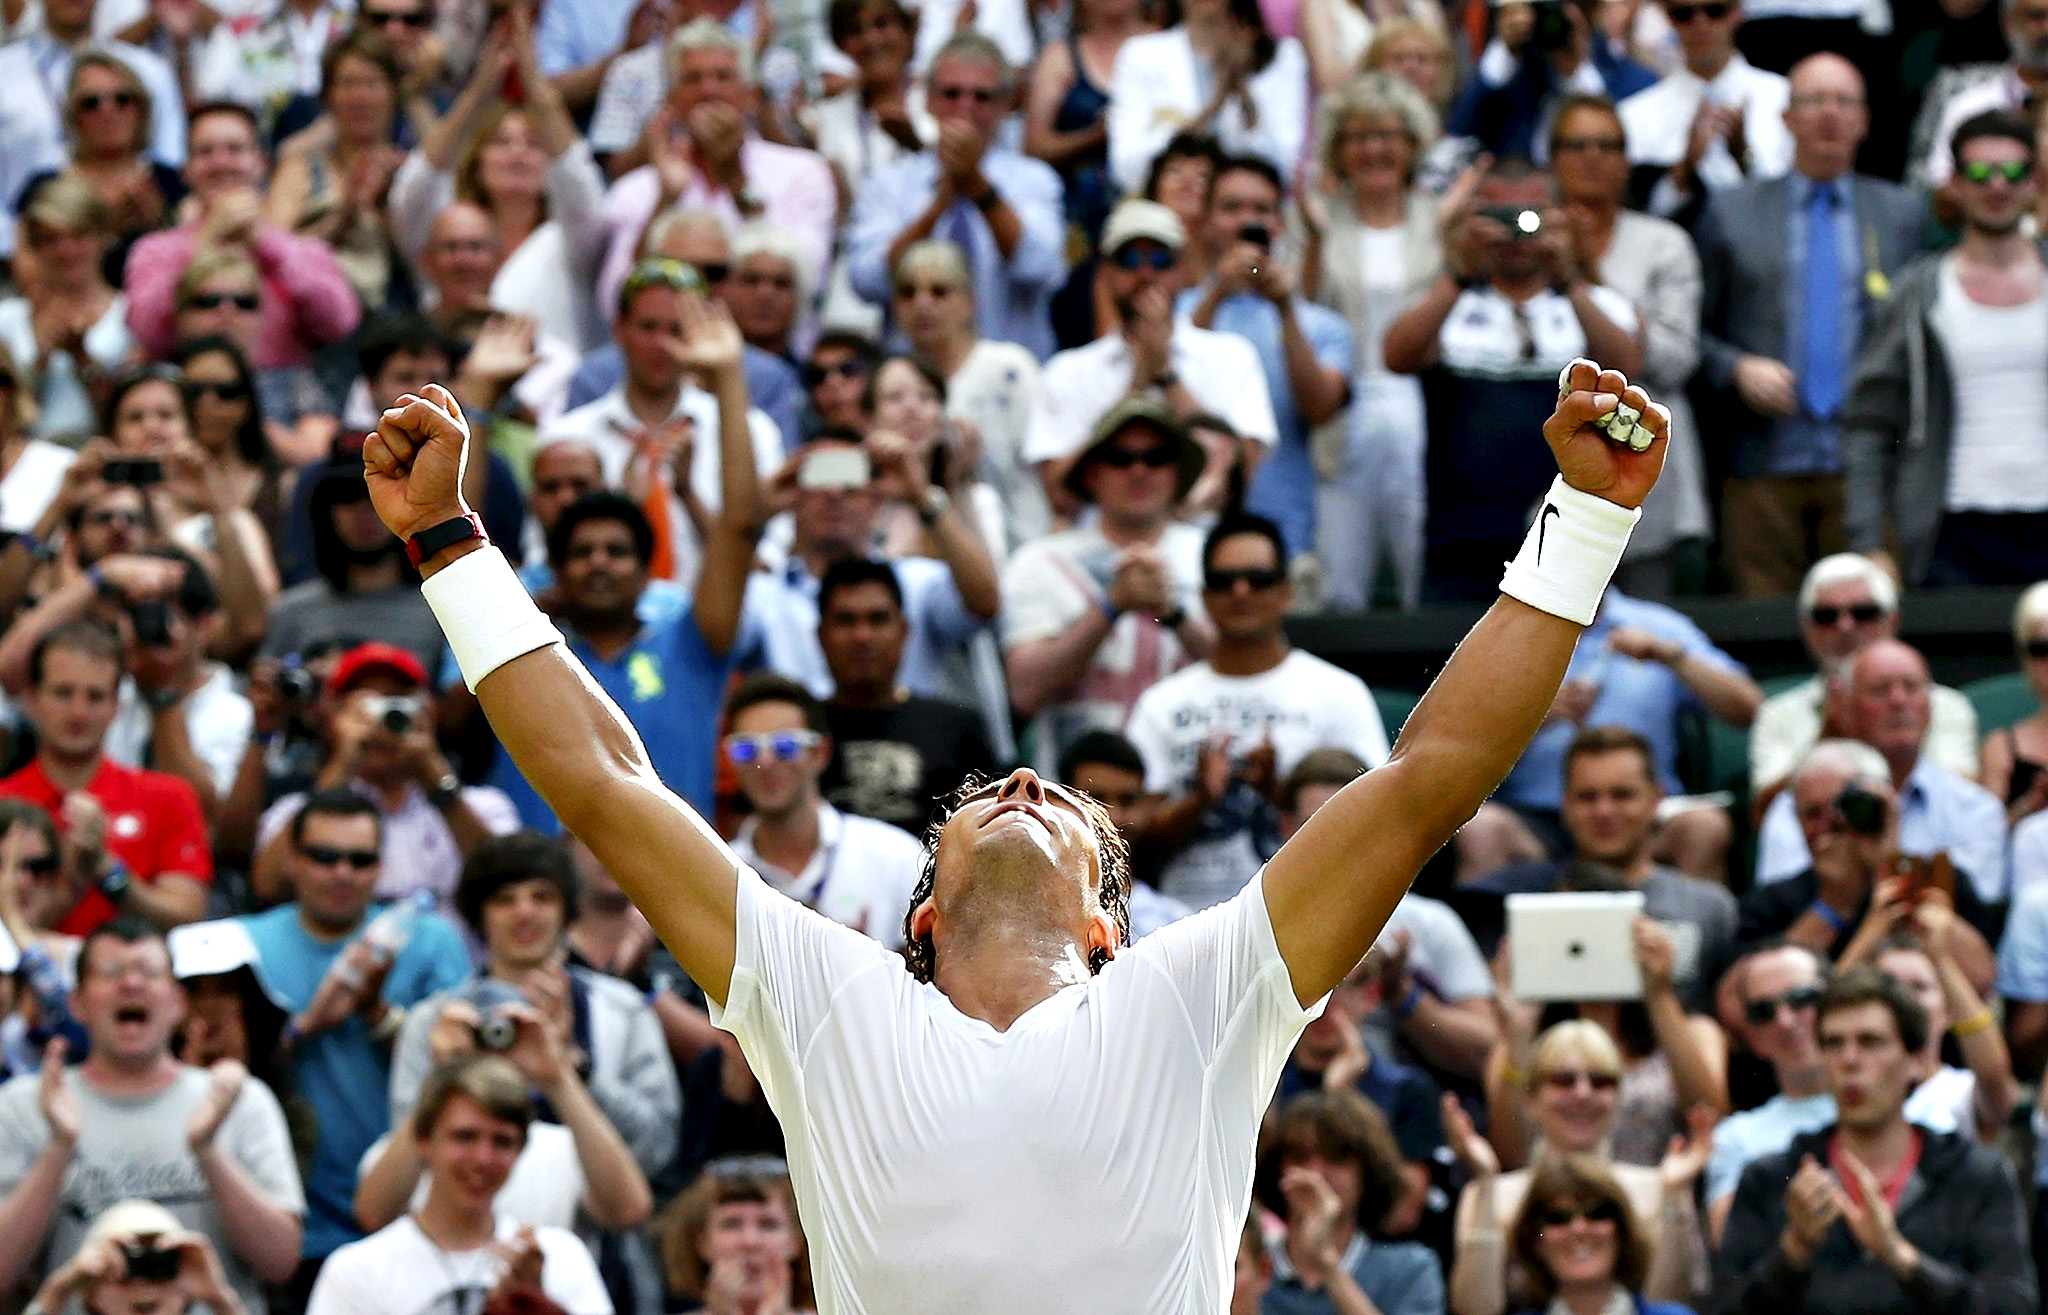 Rafael Nadal of Spain reacts after defeating Martin Klizan of Slovaki in their men's singles tennis match at the Wimbledon Tennis Championships, in London...Rafael Nadal of Spain reacts after defeating Martin Klizan of Slovaki in their men's singles tennis match at the Wimbledon Tennis Championships, in London June 24, 2014.